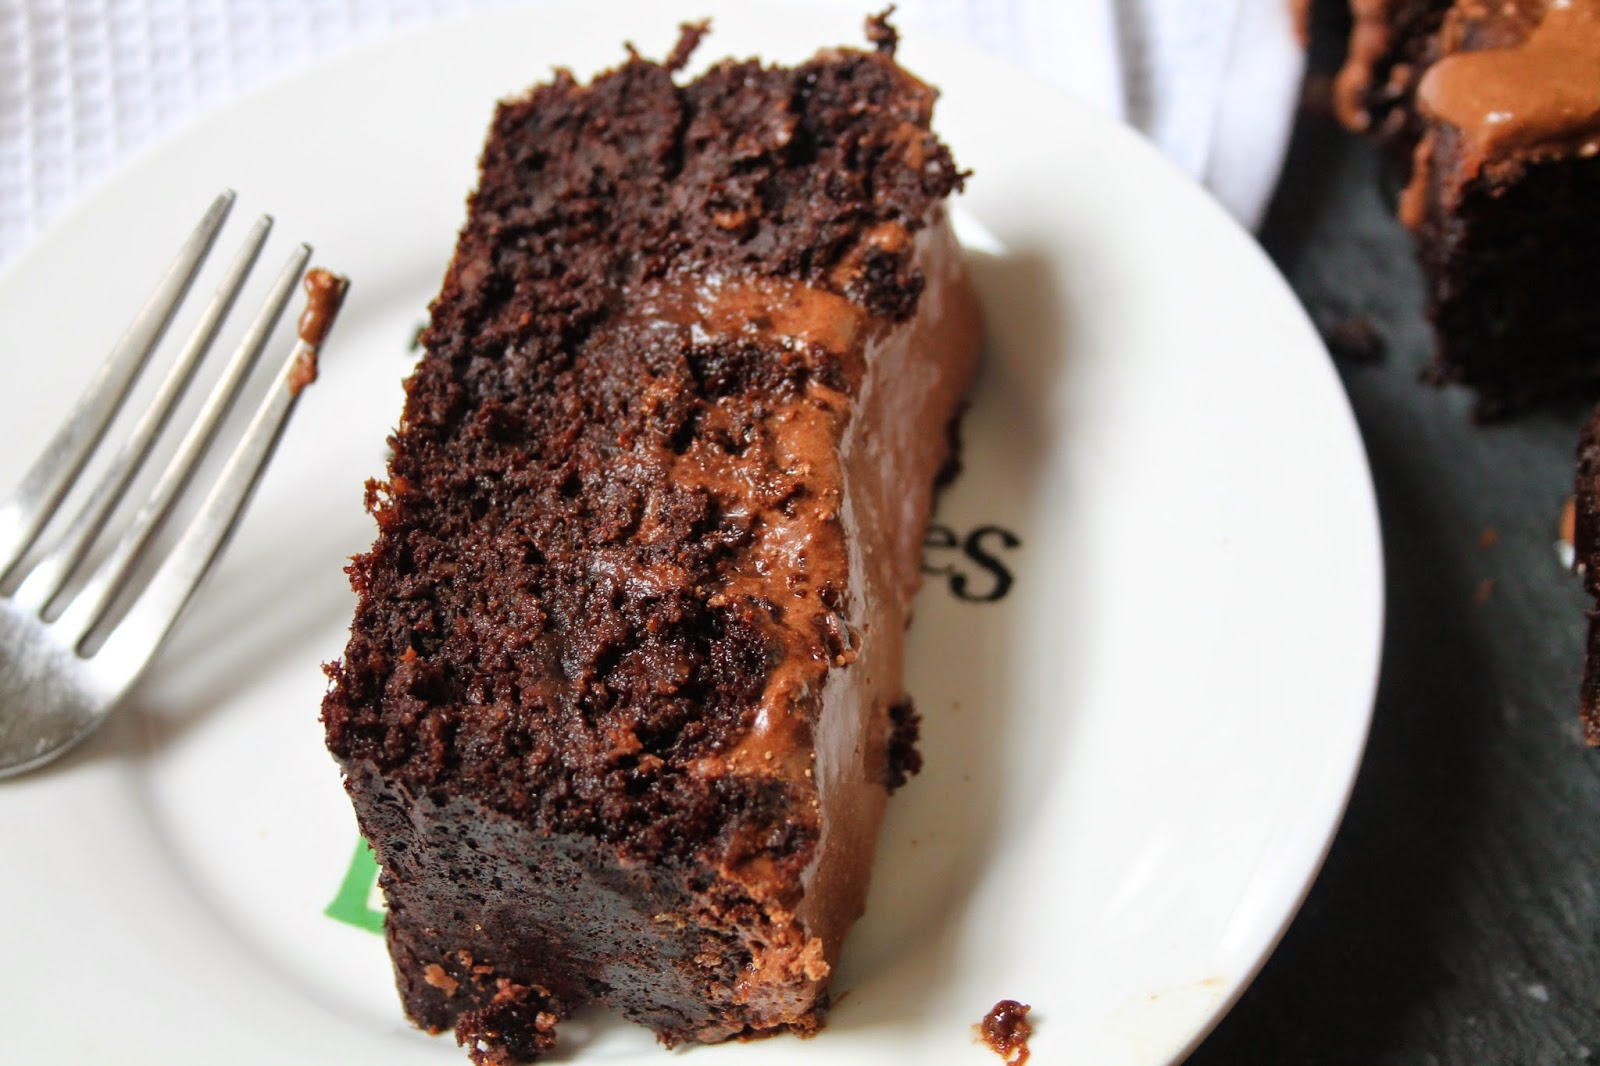 Paleo Double Chocolate Fudge Cake